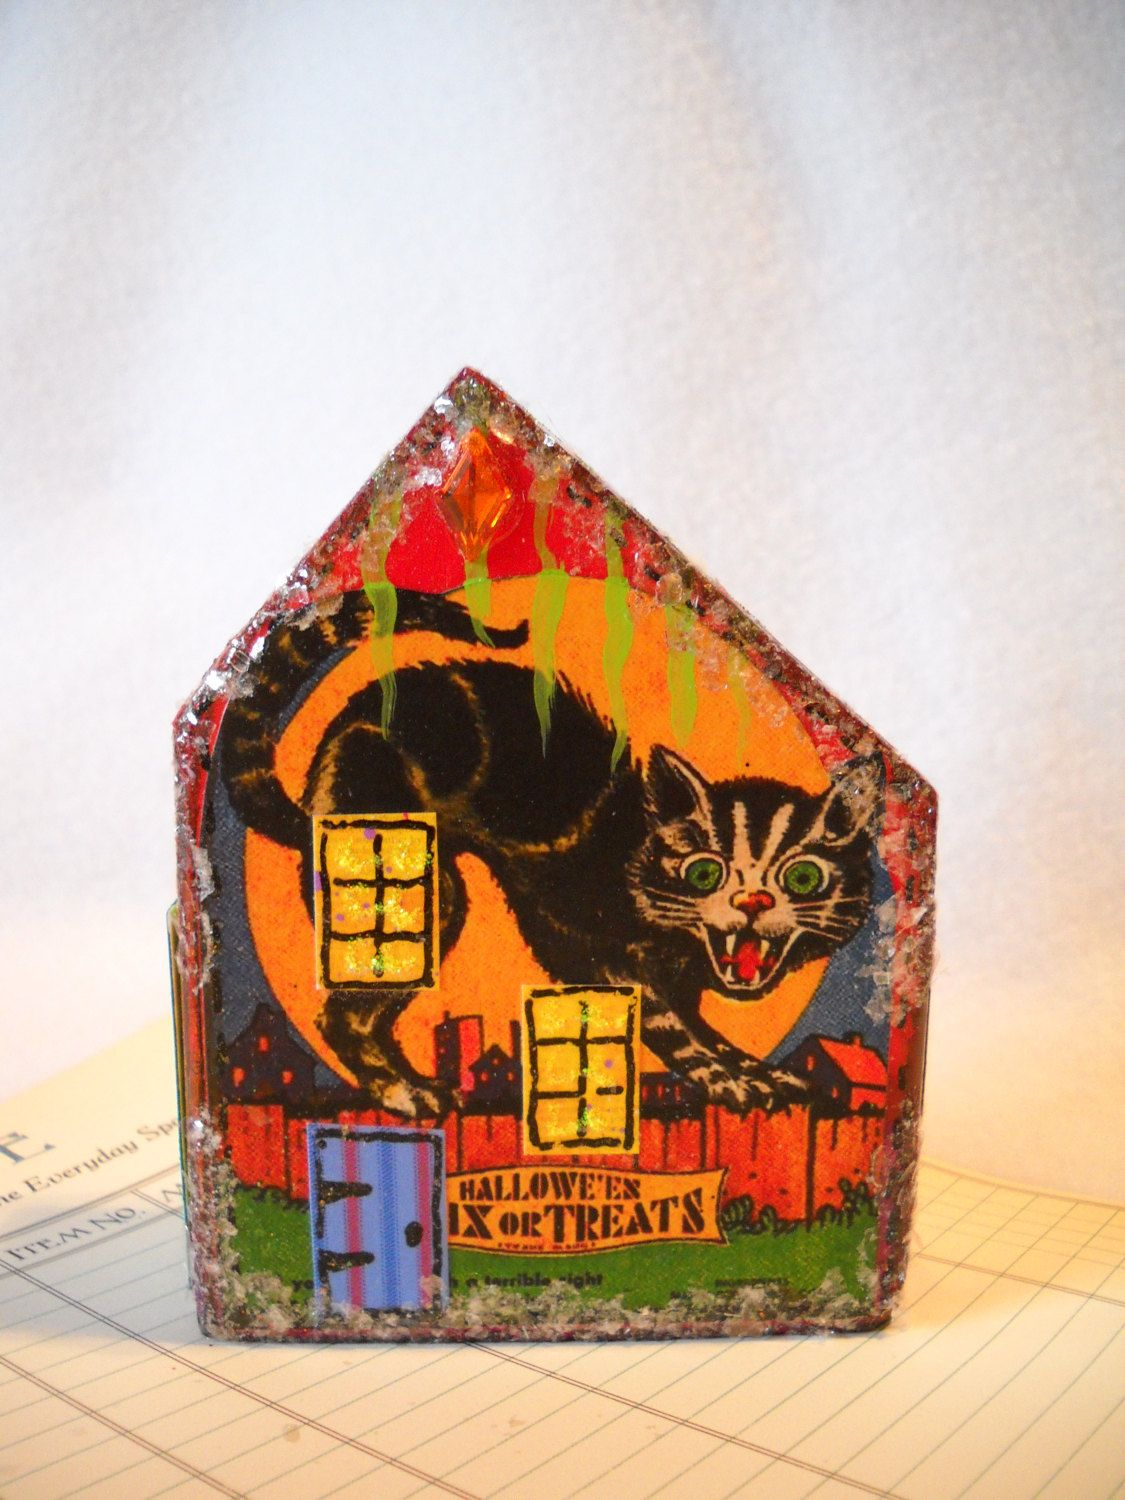 Halloween decoration Putz glitter house wooden block house vintage - Halloween House Decoration